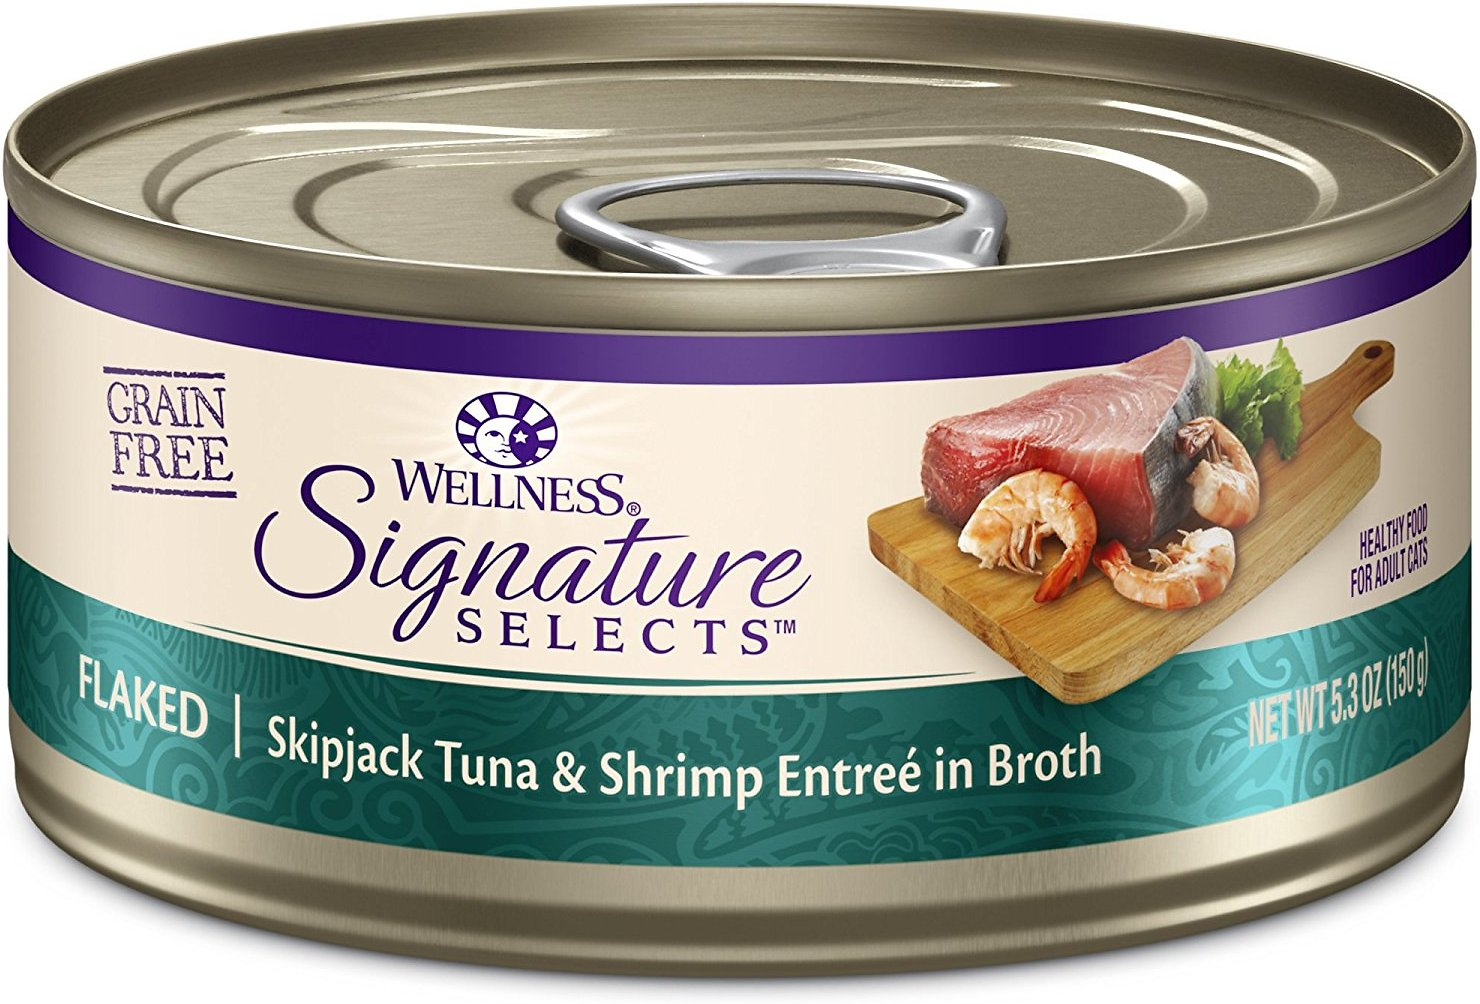 Wellness CORE Signature Selects Flaked Skipjack Tuna & Shrimp Entree in Broth Grain-Free Canned Cat Food